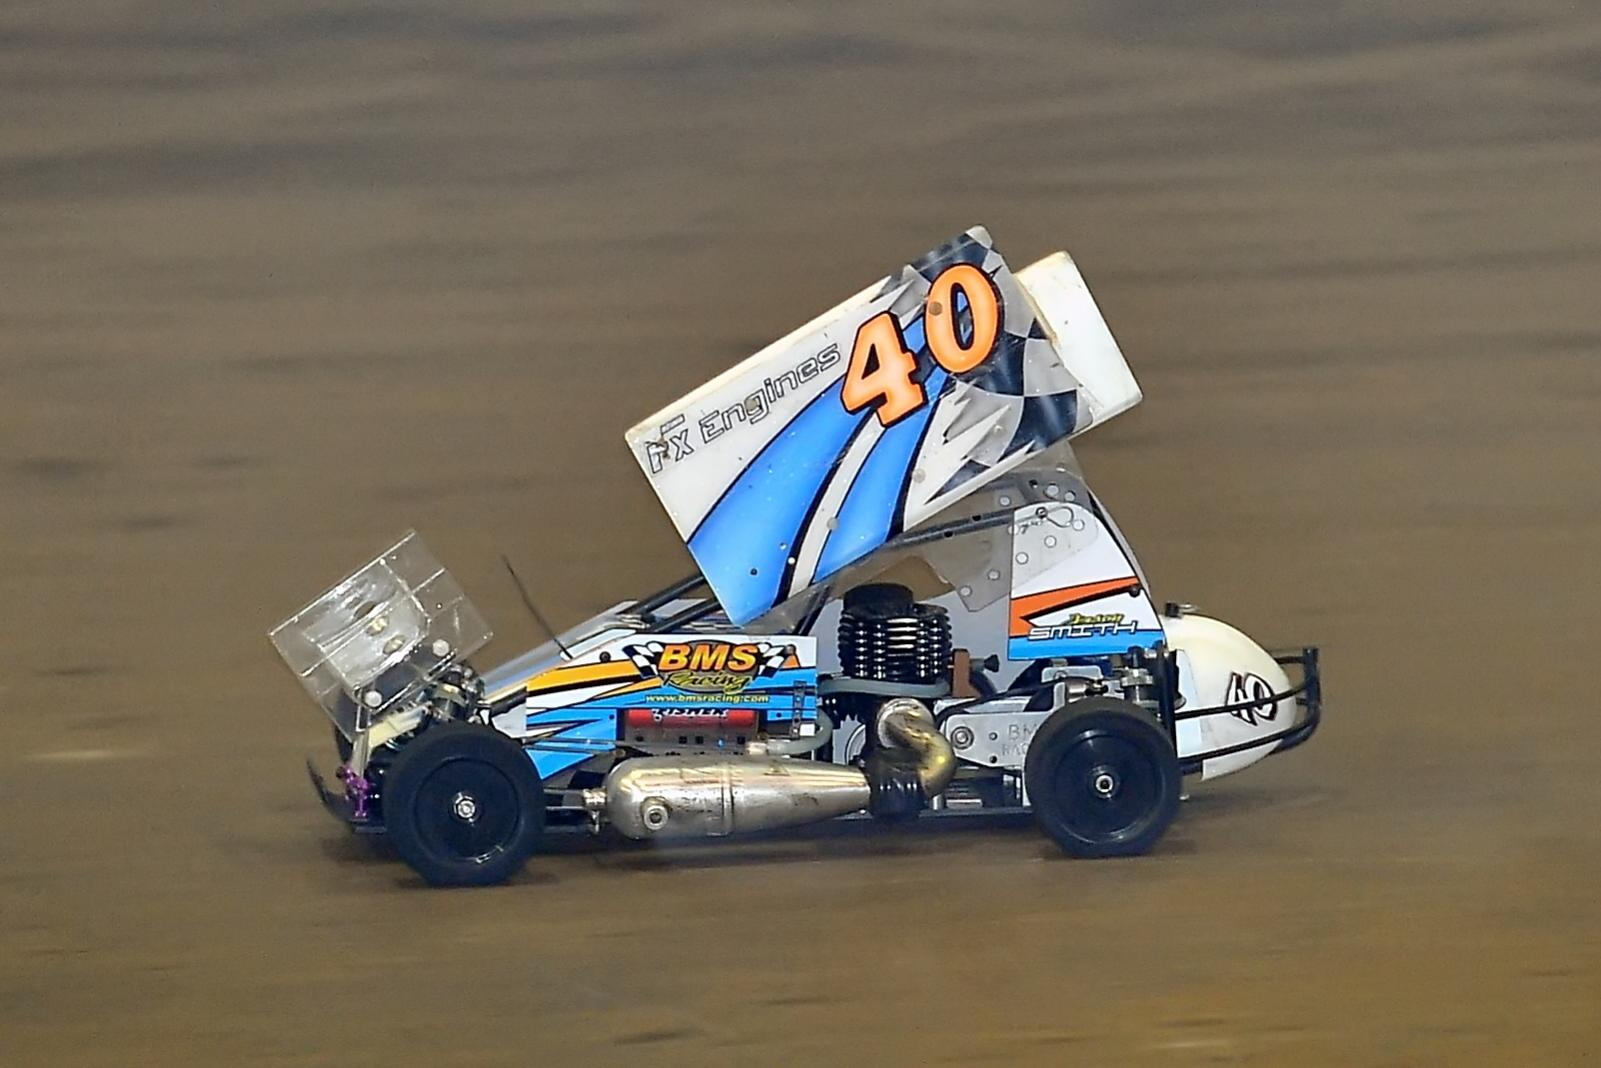 post up pics of your sprint cars page 2 r c tech forums. Black Bedroom Furniture Sets. Home Design Ideas